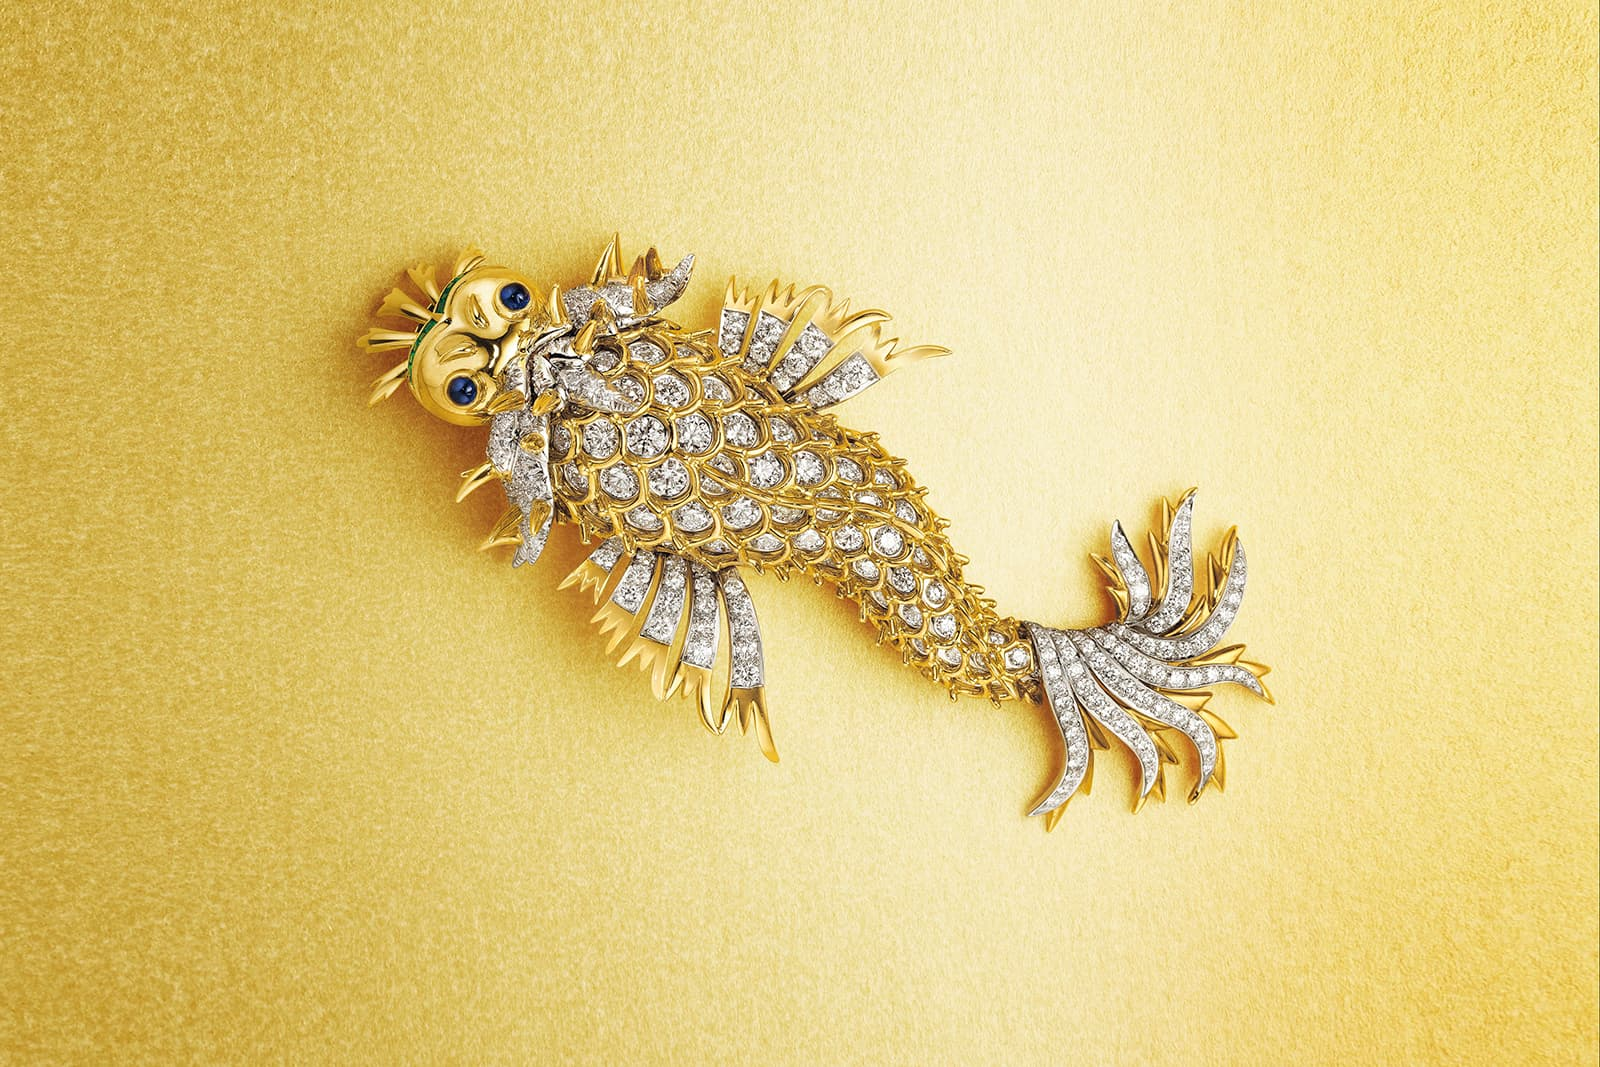 A charming 'Dolphin' brooch with diamonds, sapphires and emeralds by Jean Schlumberger